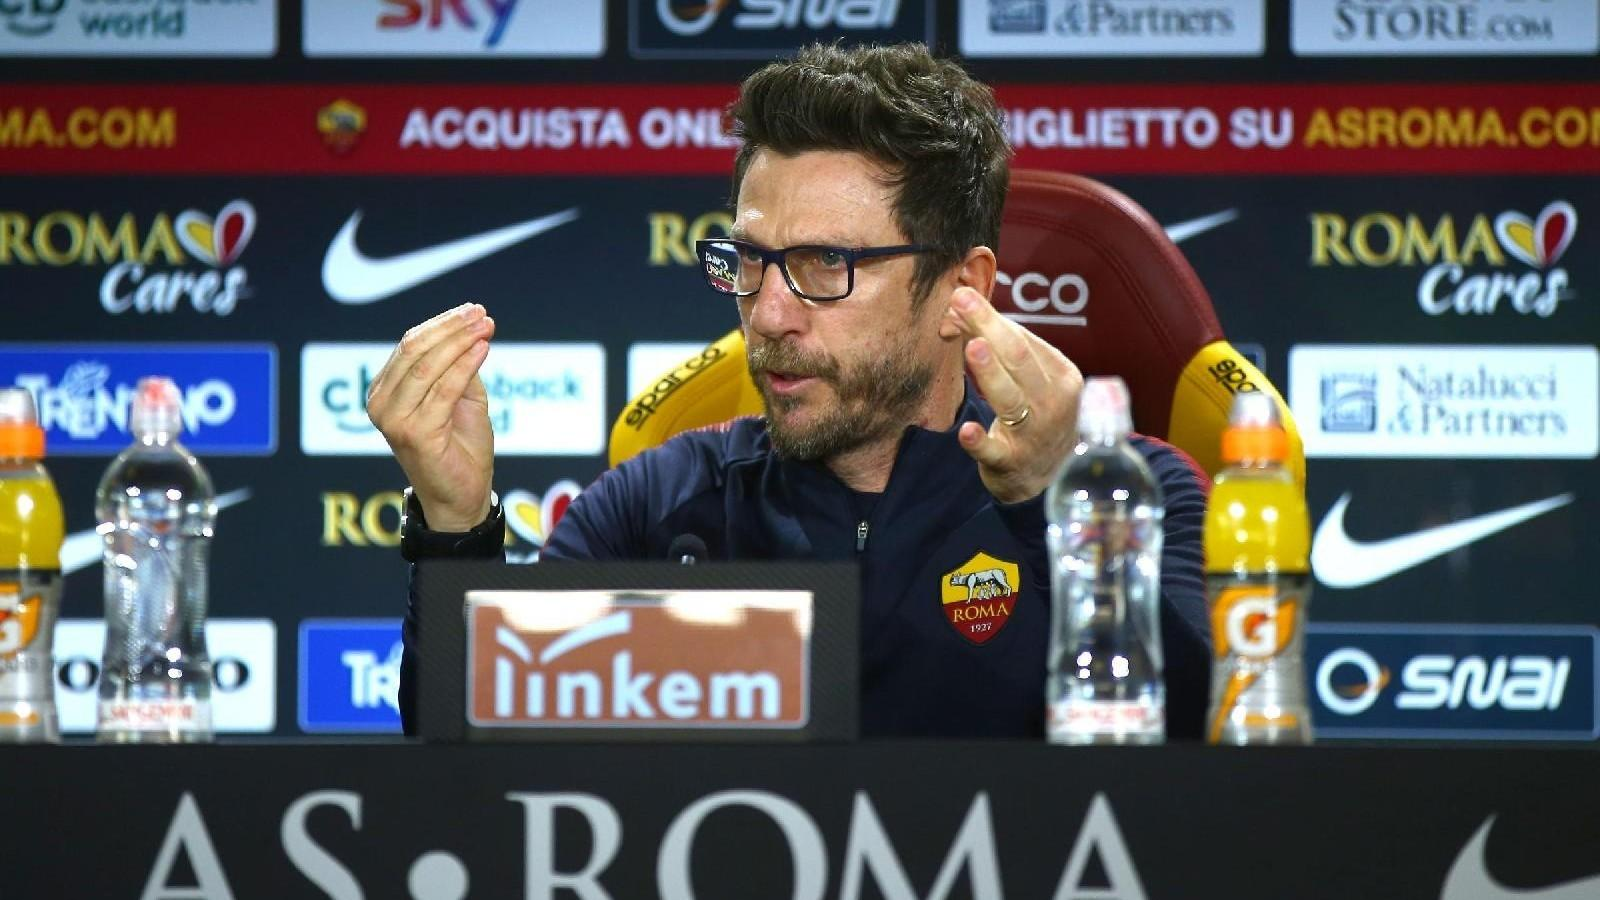 VIDEO - Verona-Roma, conferenza Di Francesco: